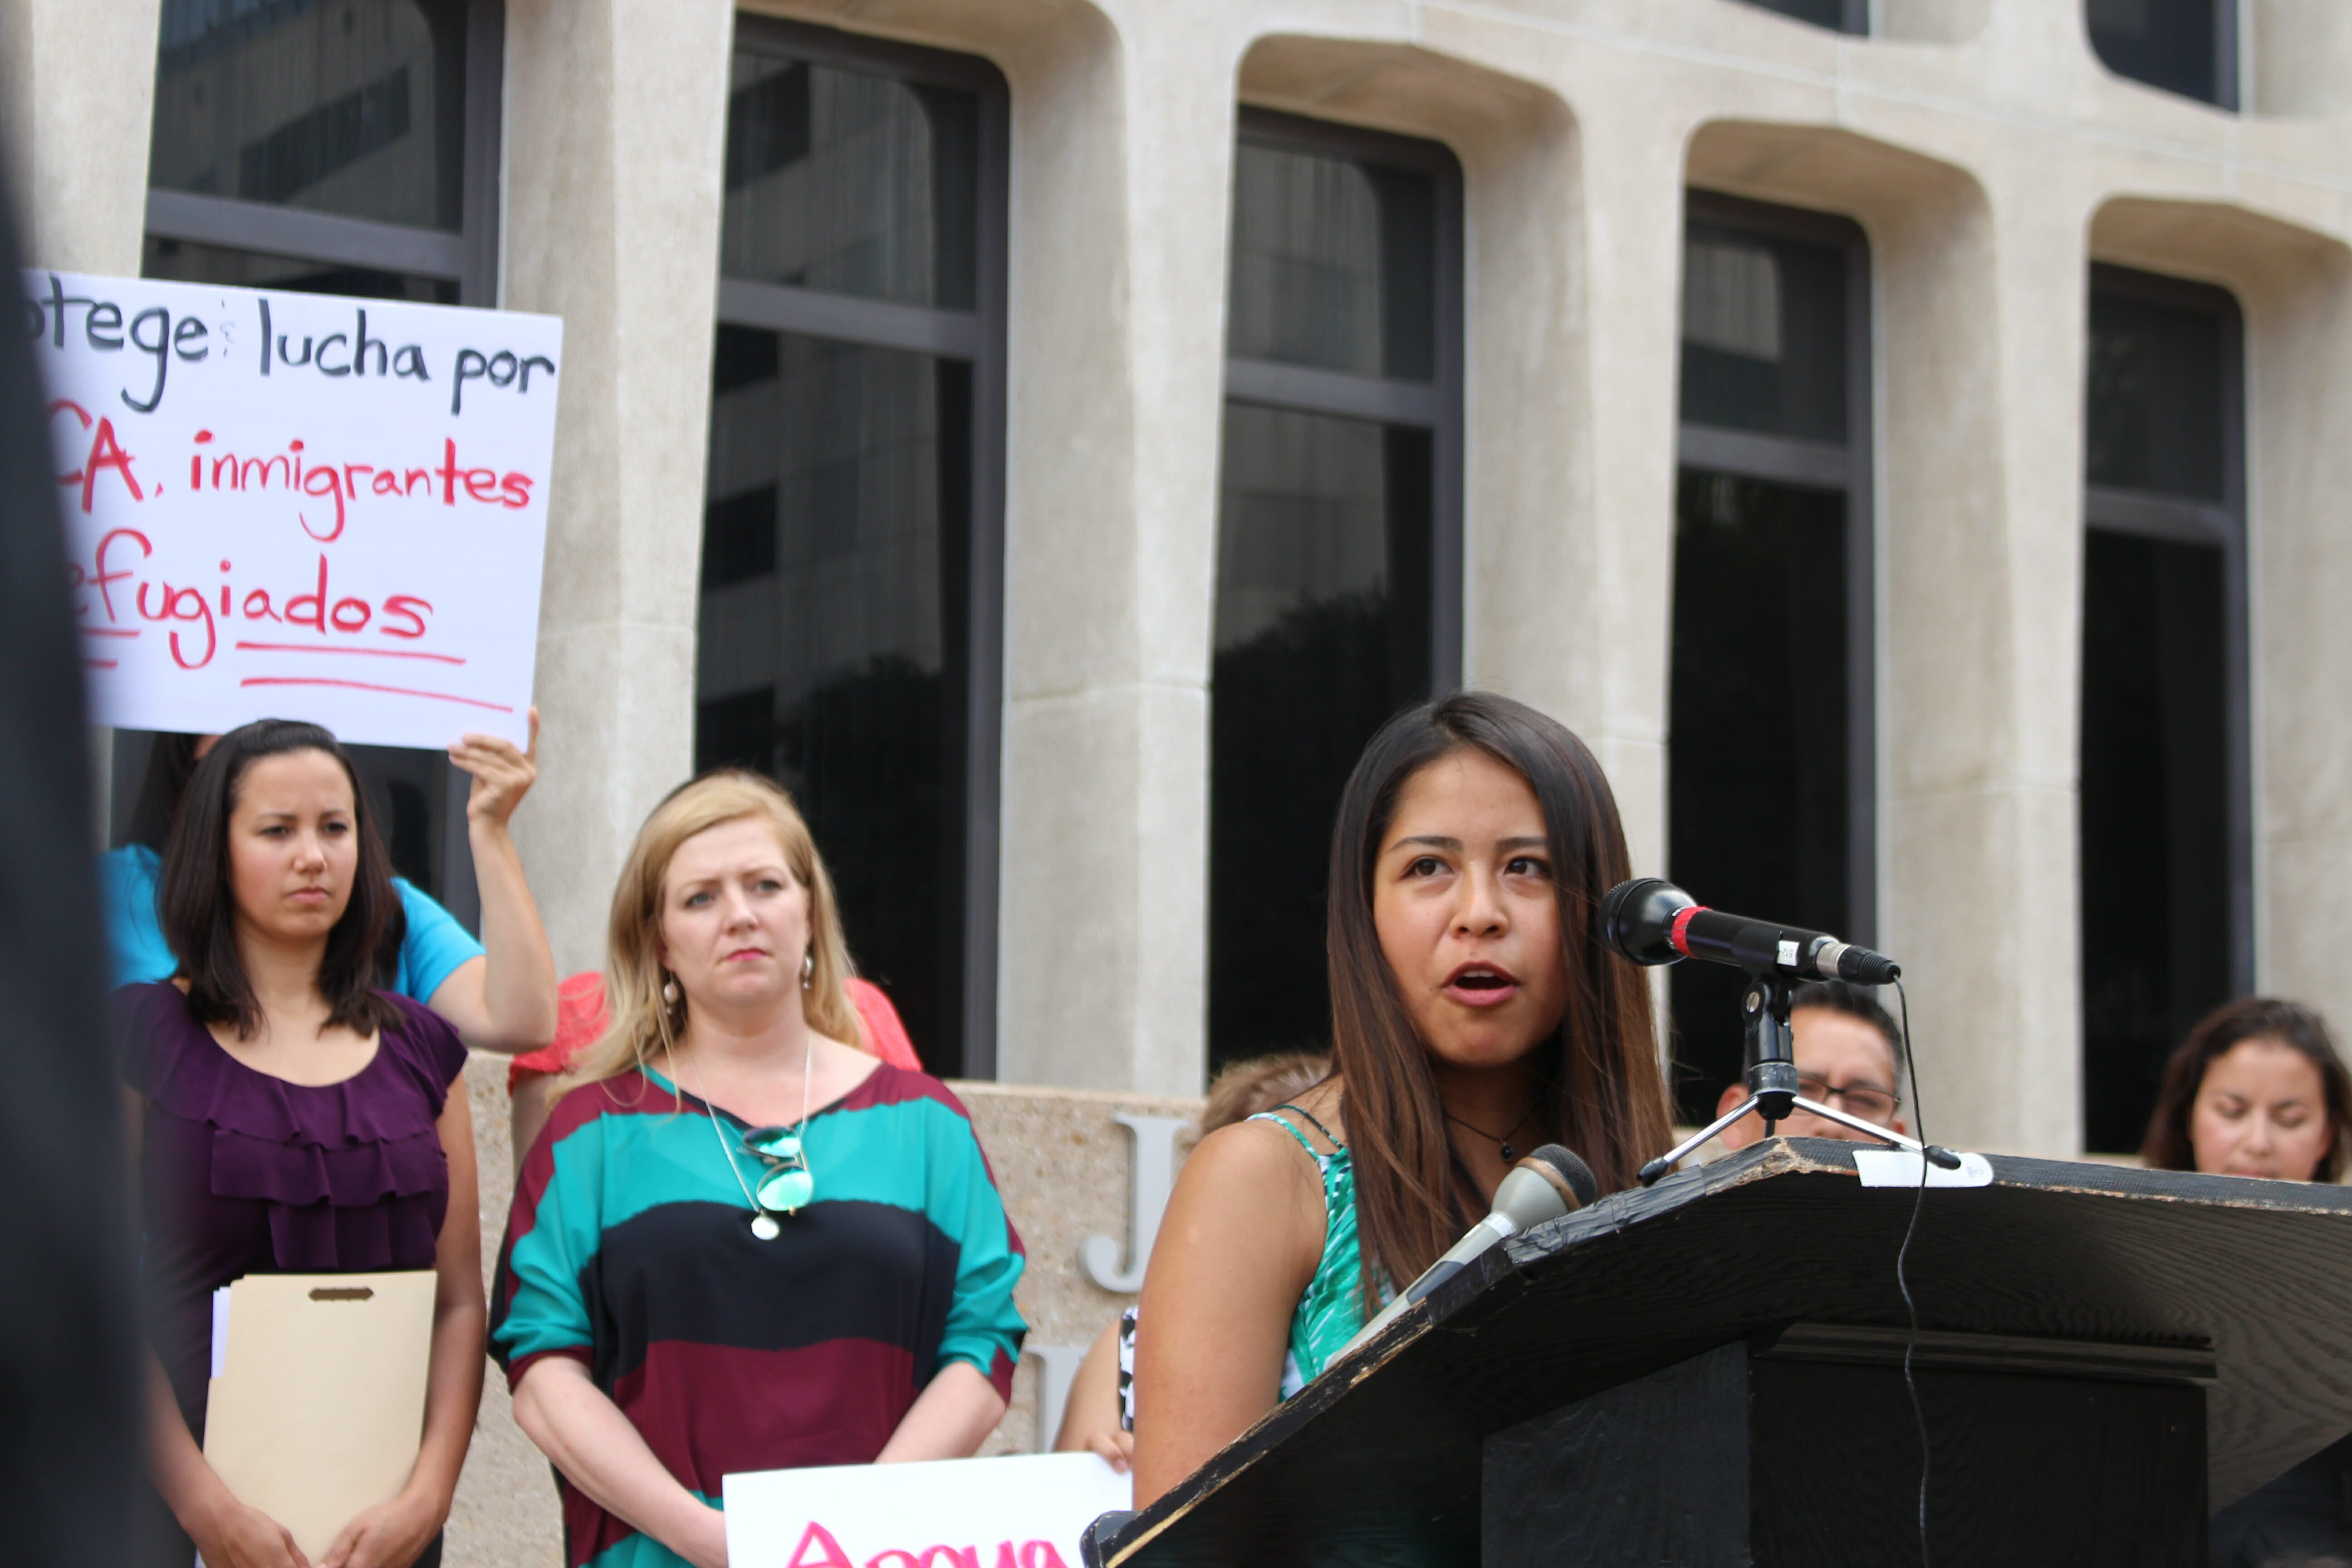 Vanessa Rodriguez, a student with UT Austin's University Leadership Initiative, talks about her experience as an undocumented student and Deferred Action for Childhood Arrivals (DACA) Act recipient at the group's conference regarding President Donald Trump's resignation of DACA on Sept. 5, 2017 in Austin, Texas.